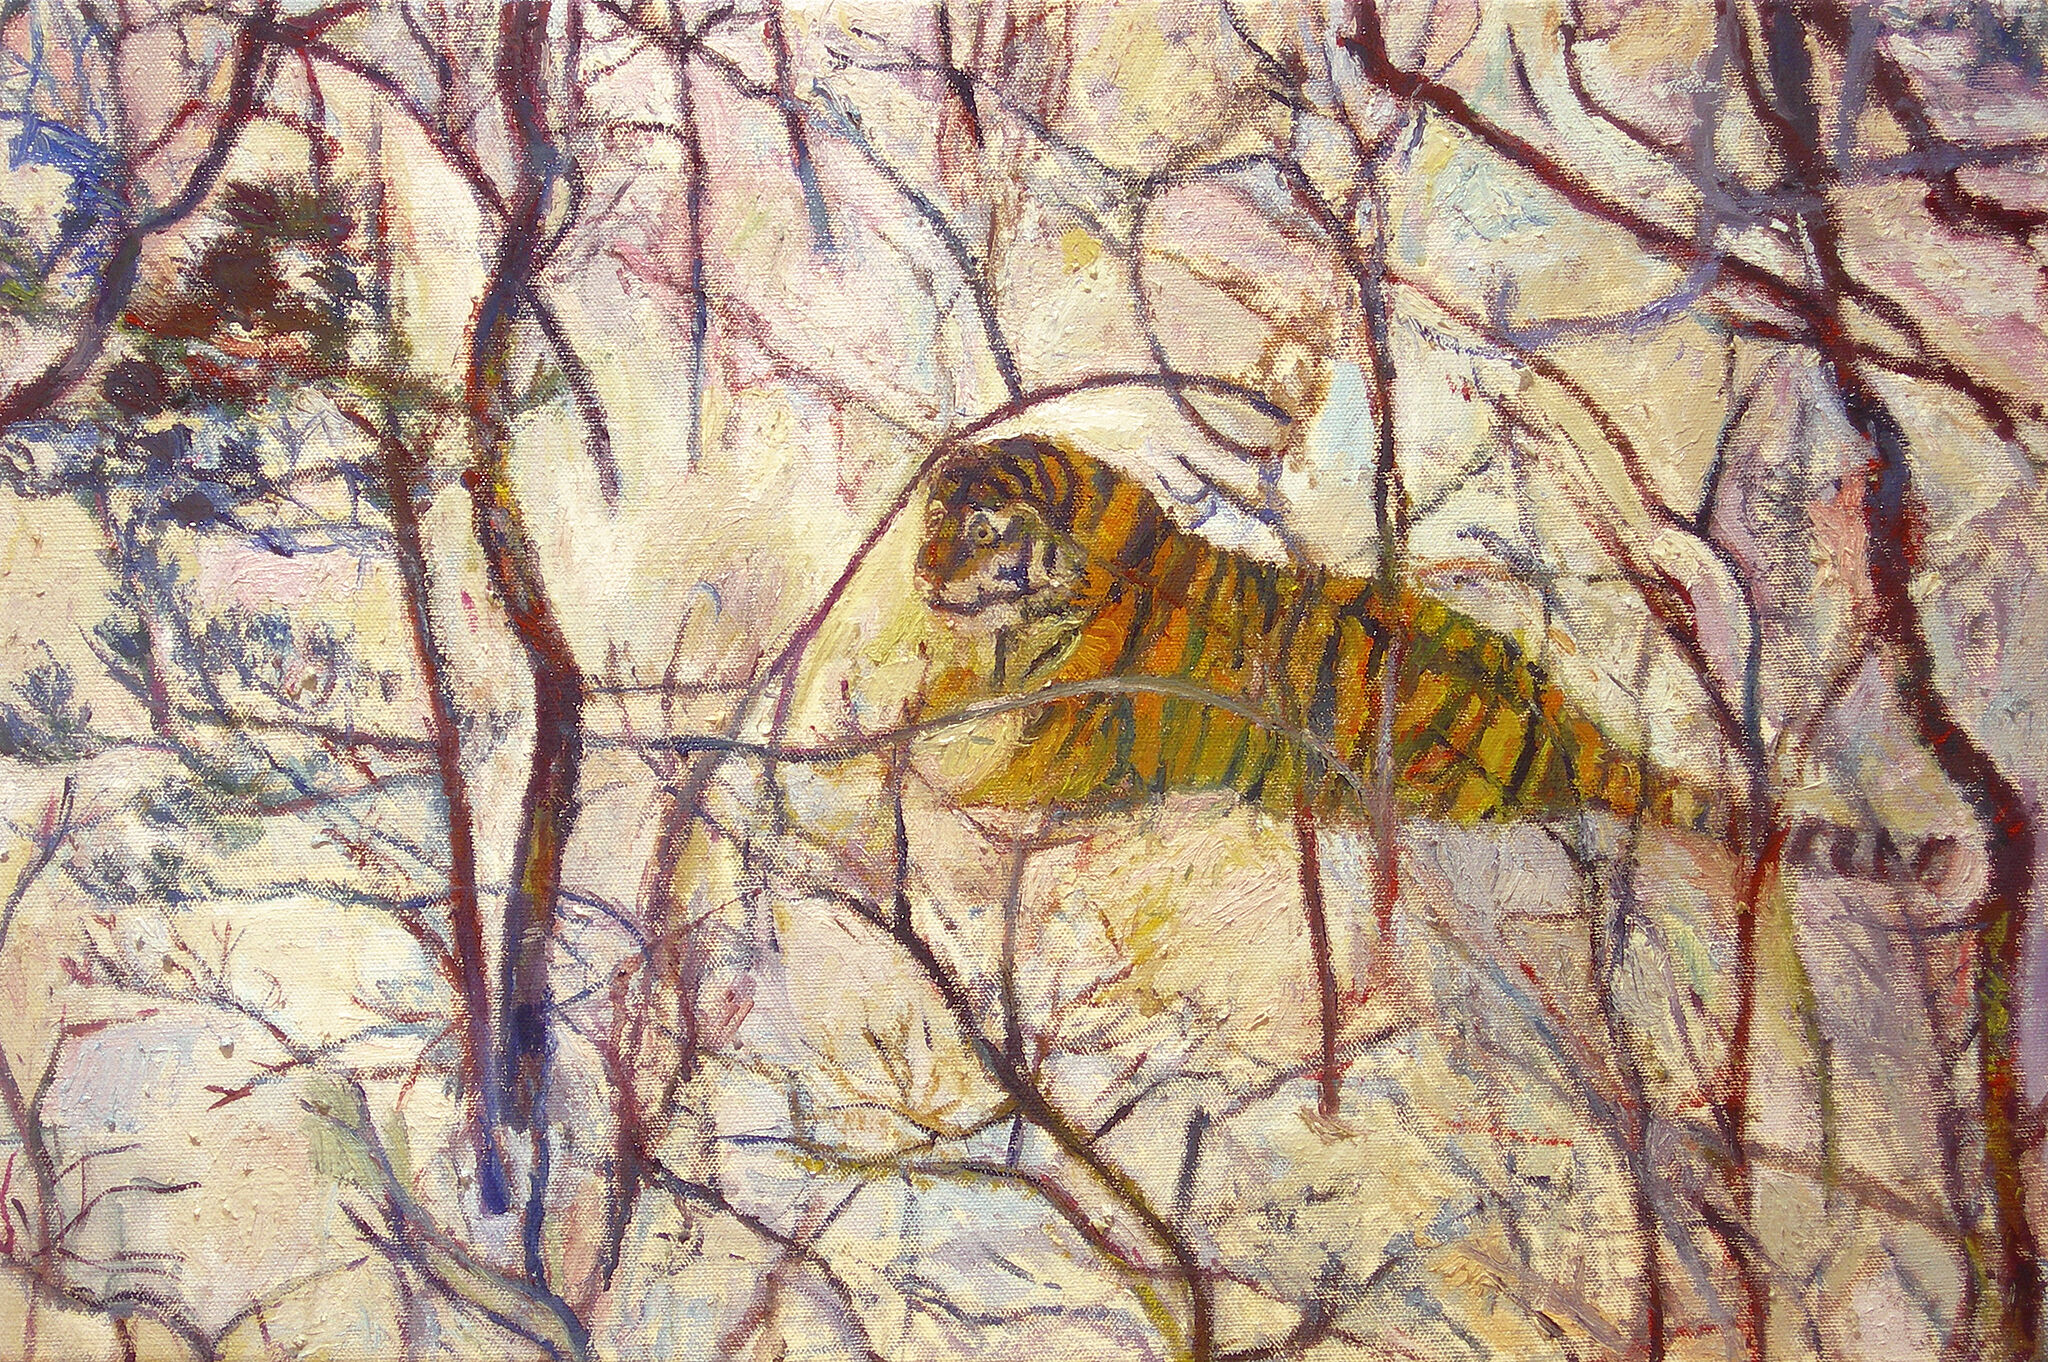 A painting of a tiger walking in the snow.